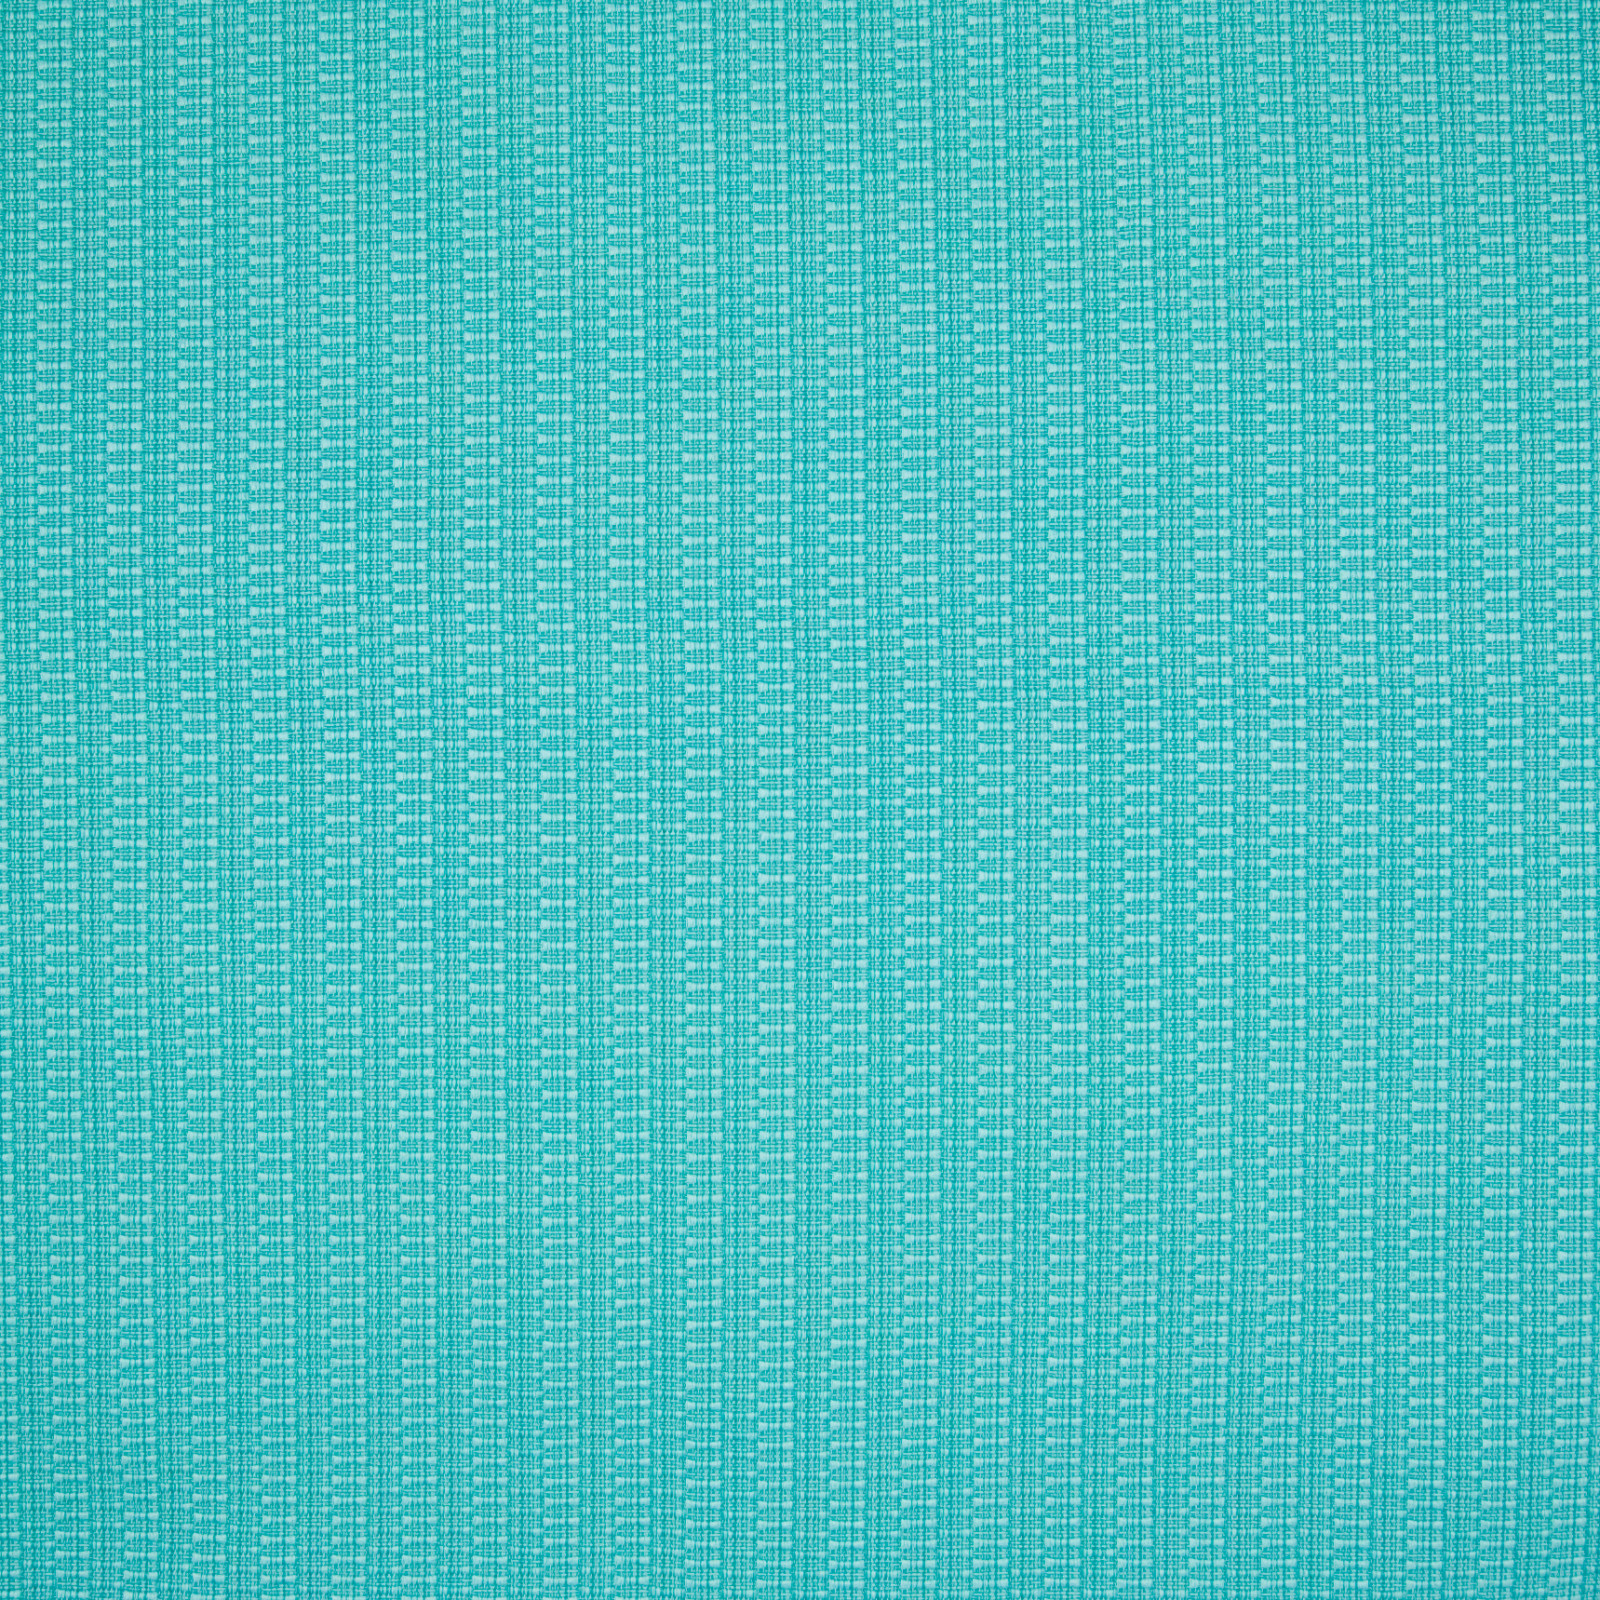 Aqua Blue And Teal Solid Cotton Upholstery Fabric